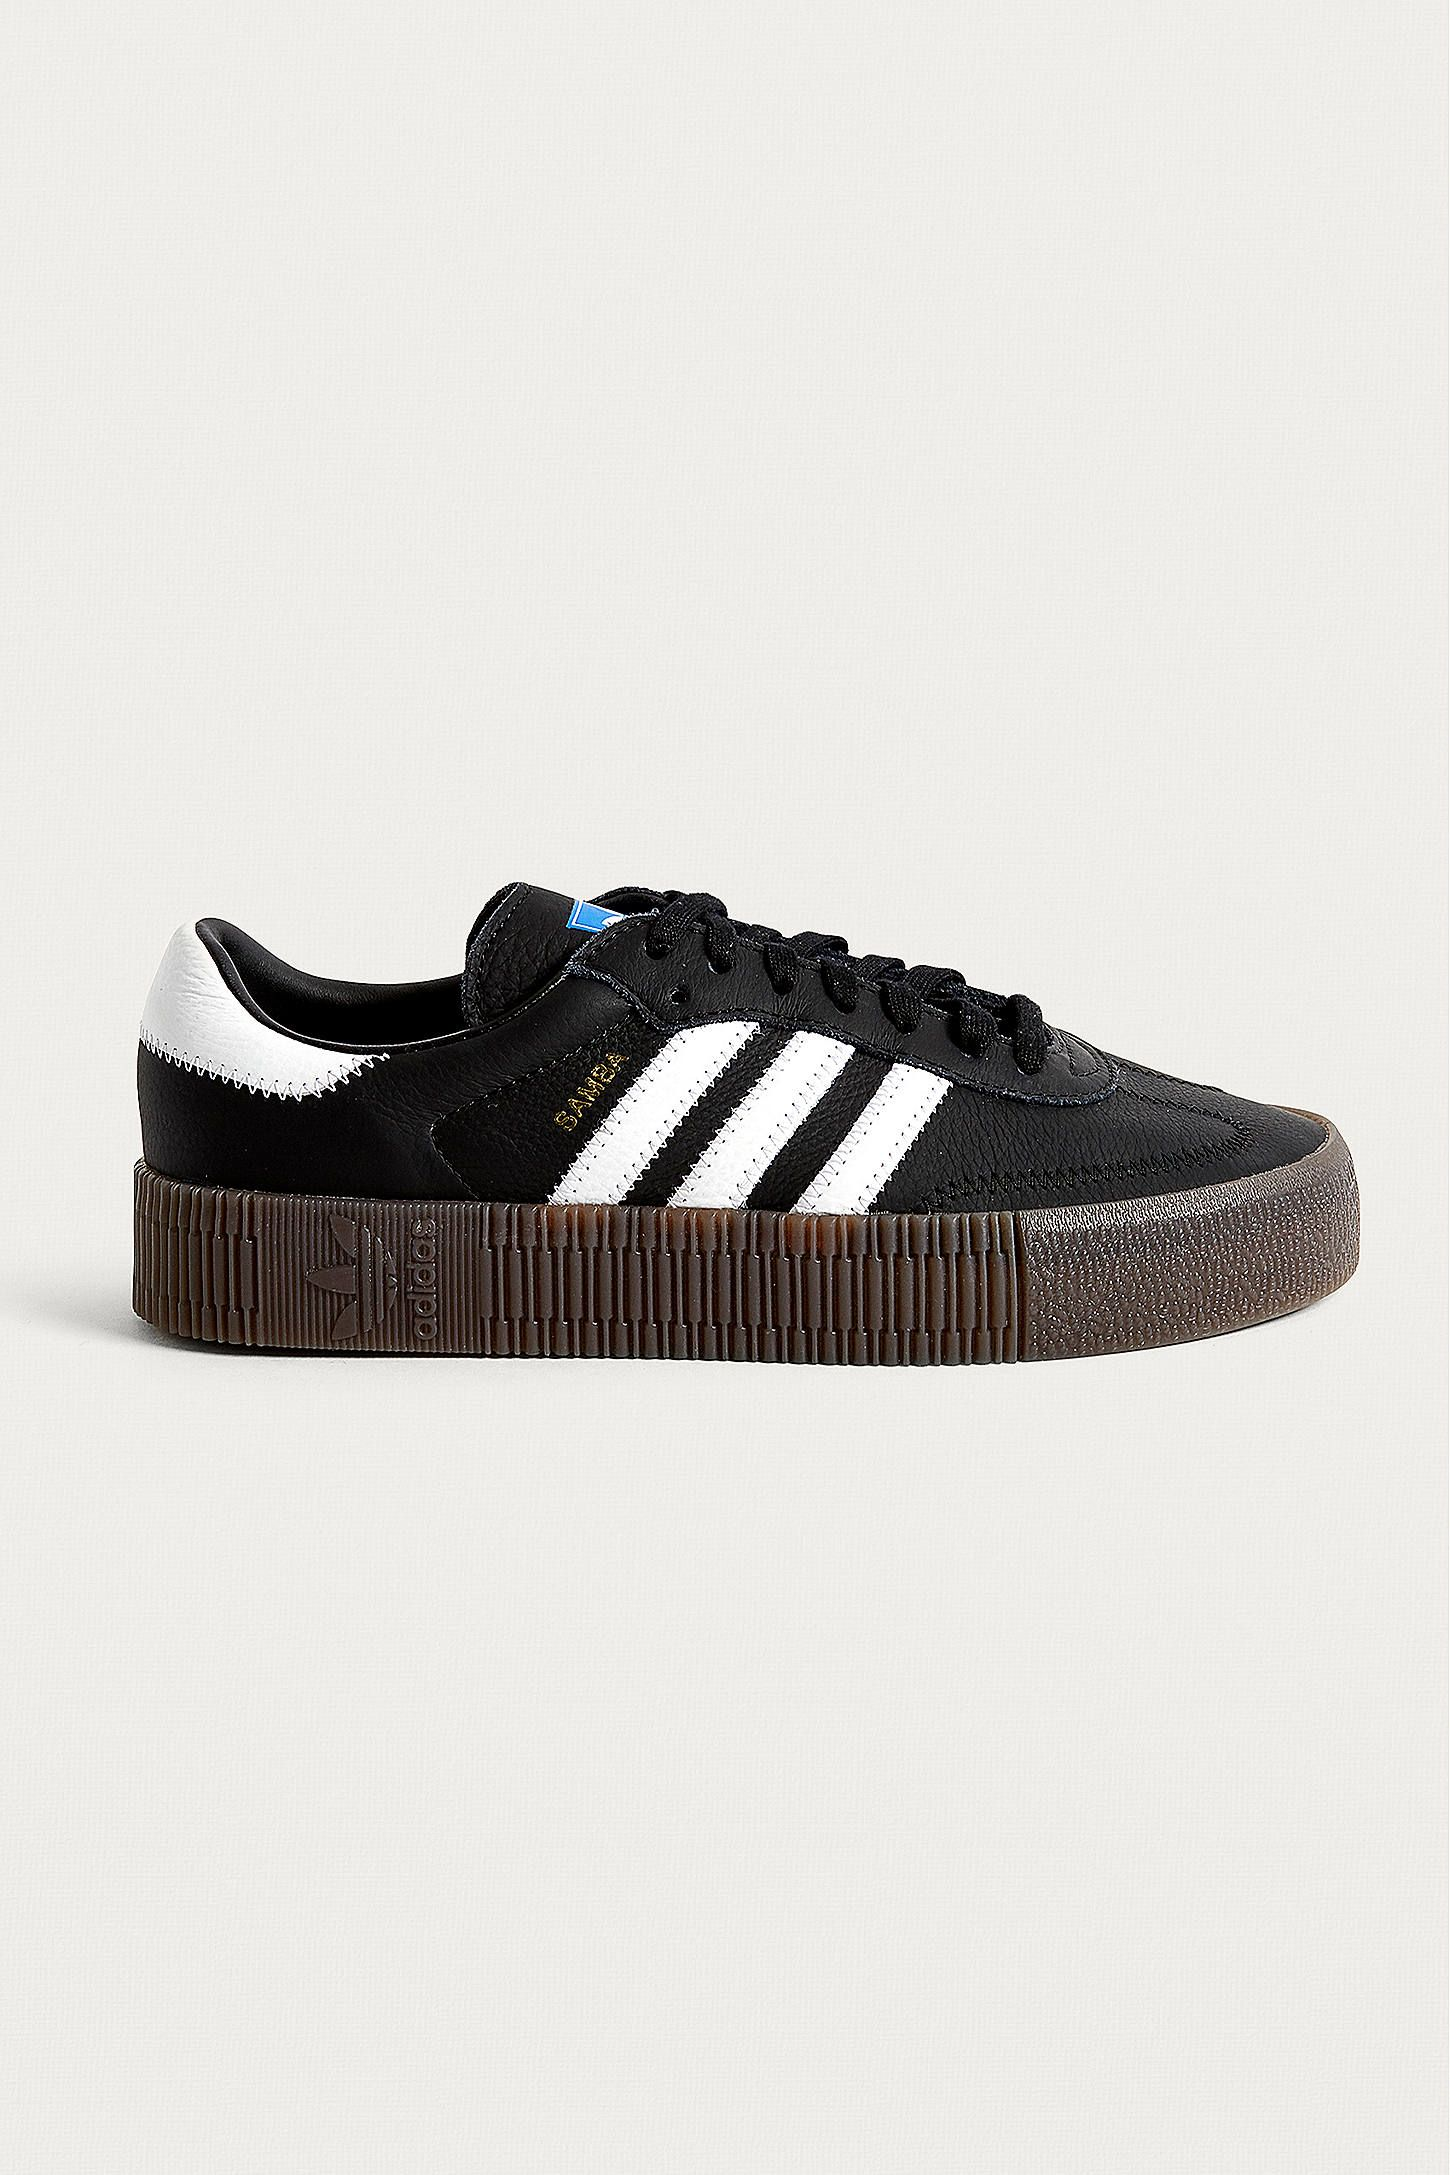 new style 9e8ad 22fd2 adidas Originals Samba Rose Black Trainers  Urban Outfitters